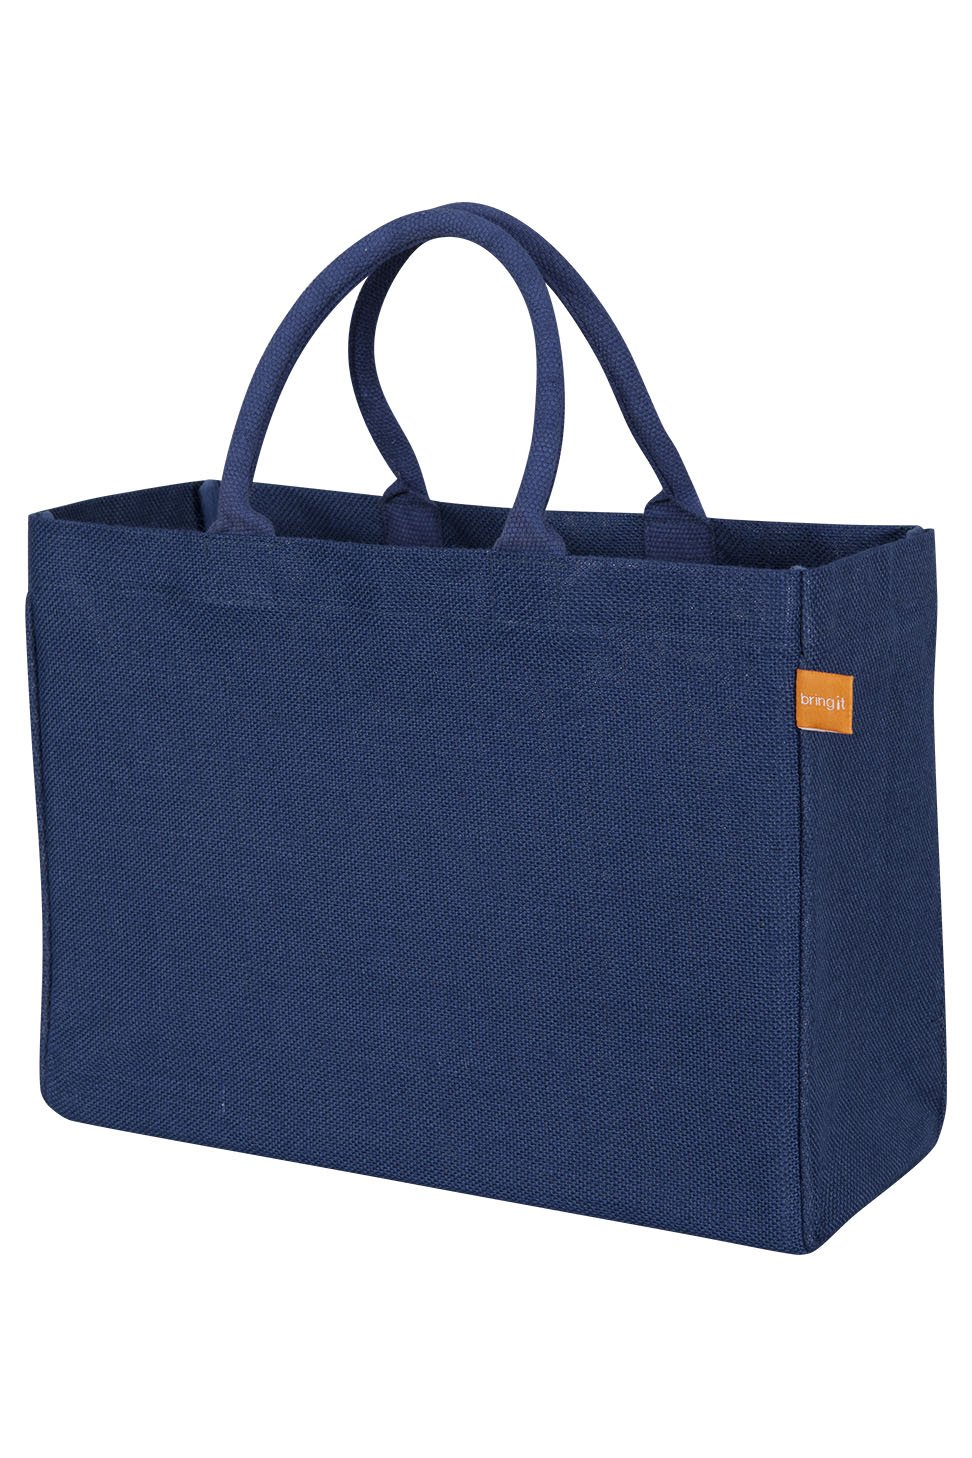 KAF Home Jute Market Tote Bag in Navy, Durable Handle, Reinforced Bottom and Interior Zipper Pocket, Generous capacity, 12.5'' tall x 17'' wide x 7'' deep